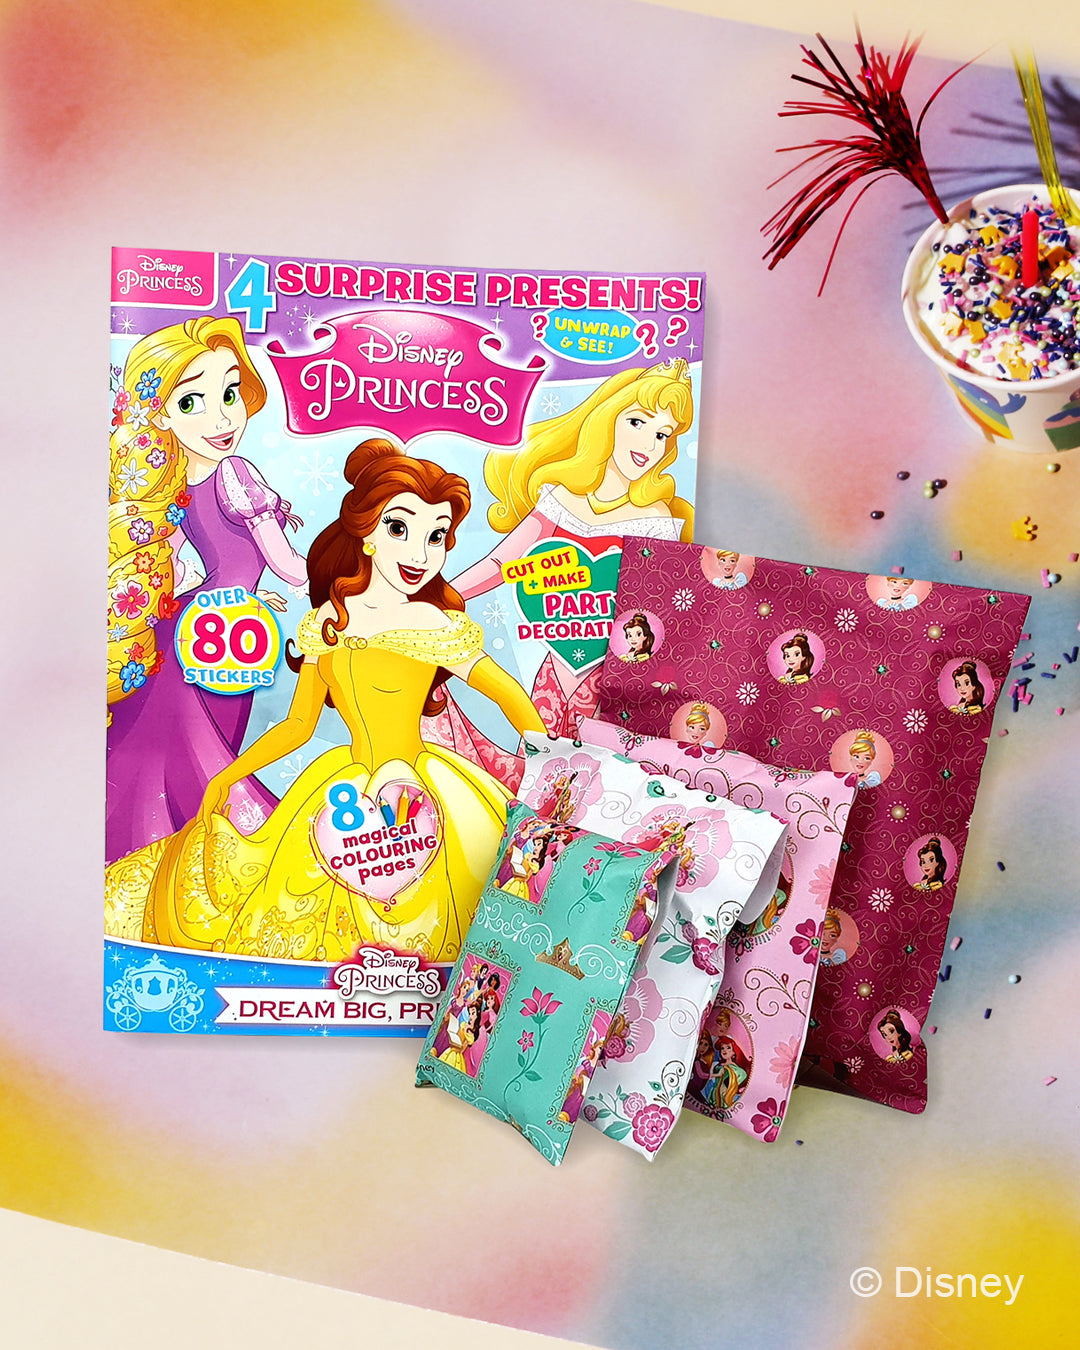 Disney Princess magazine and 4 surprise gifts